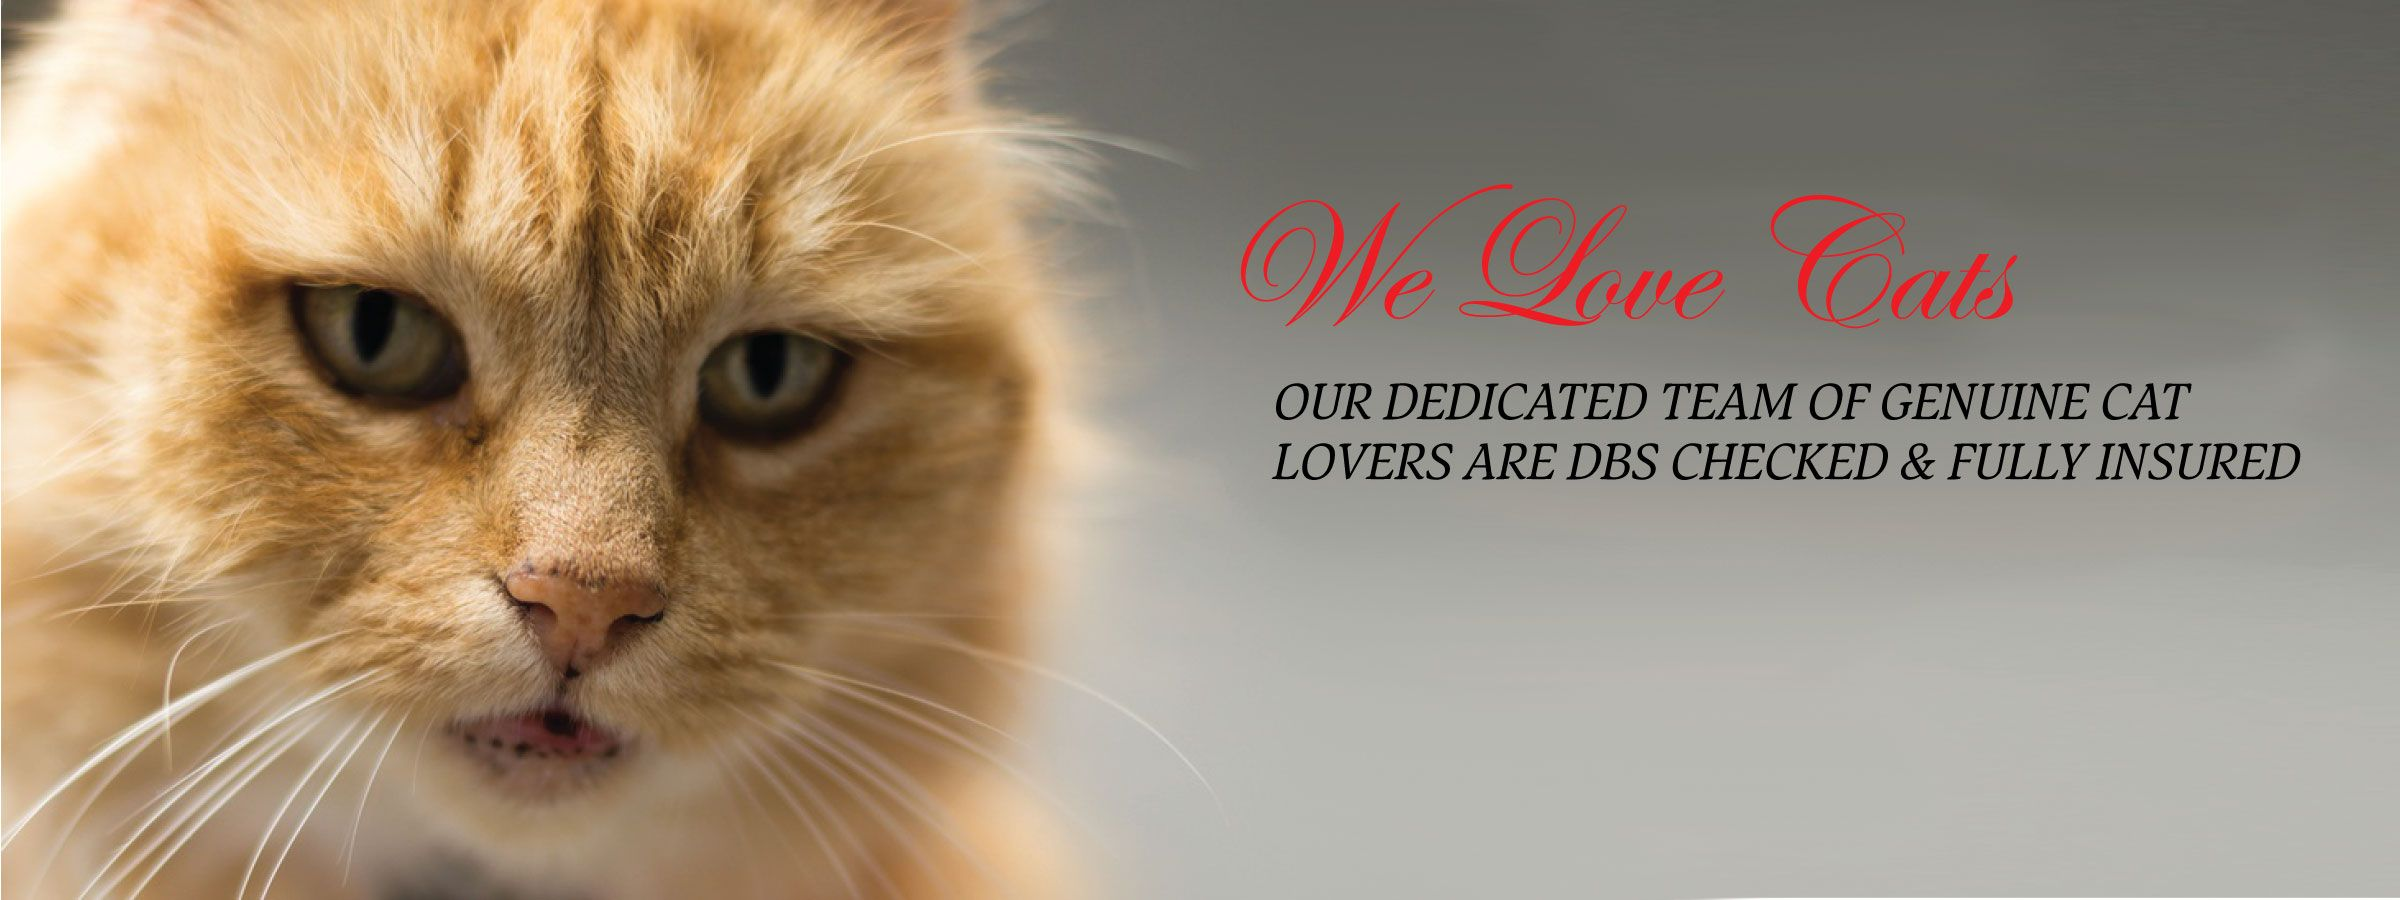 we-love-cats